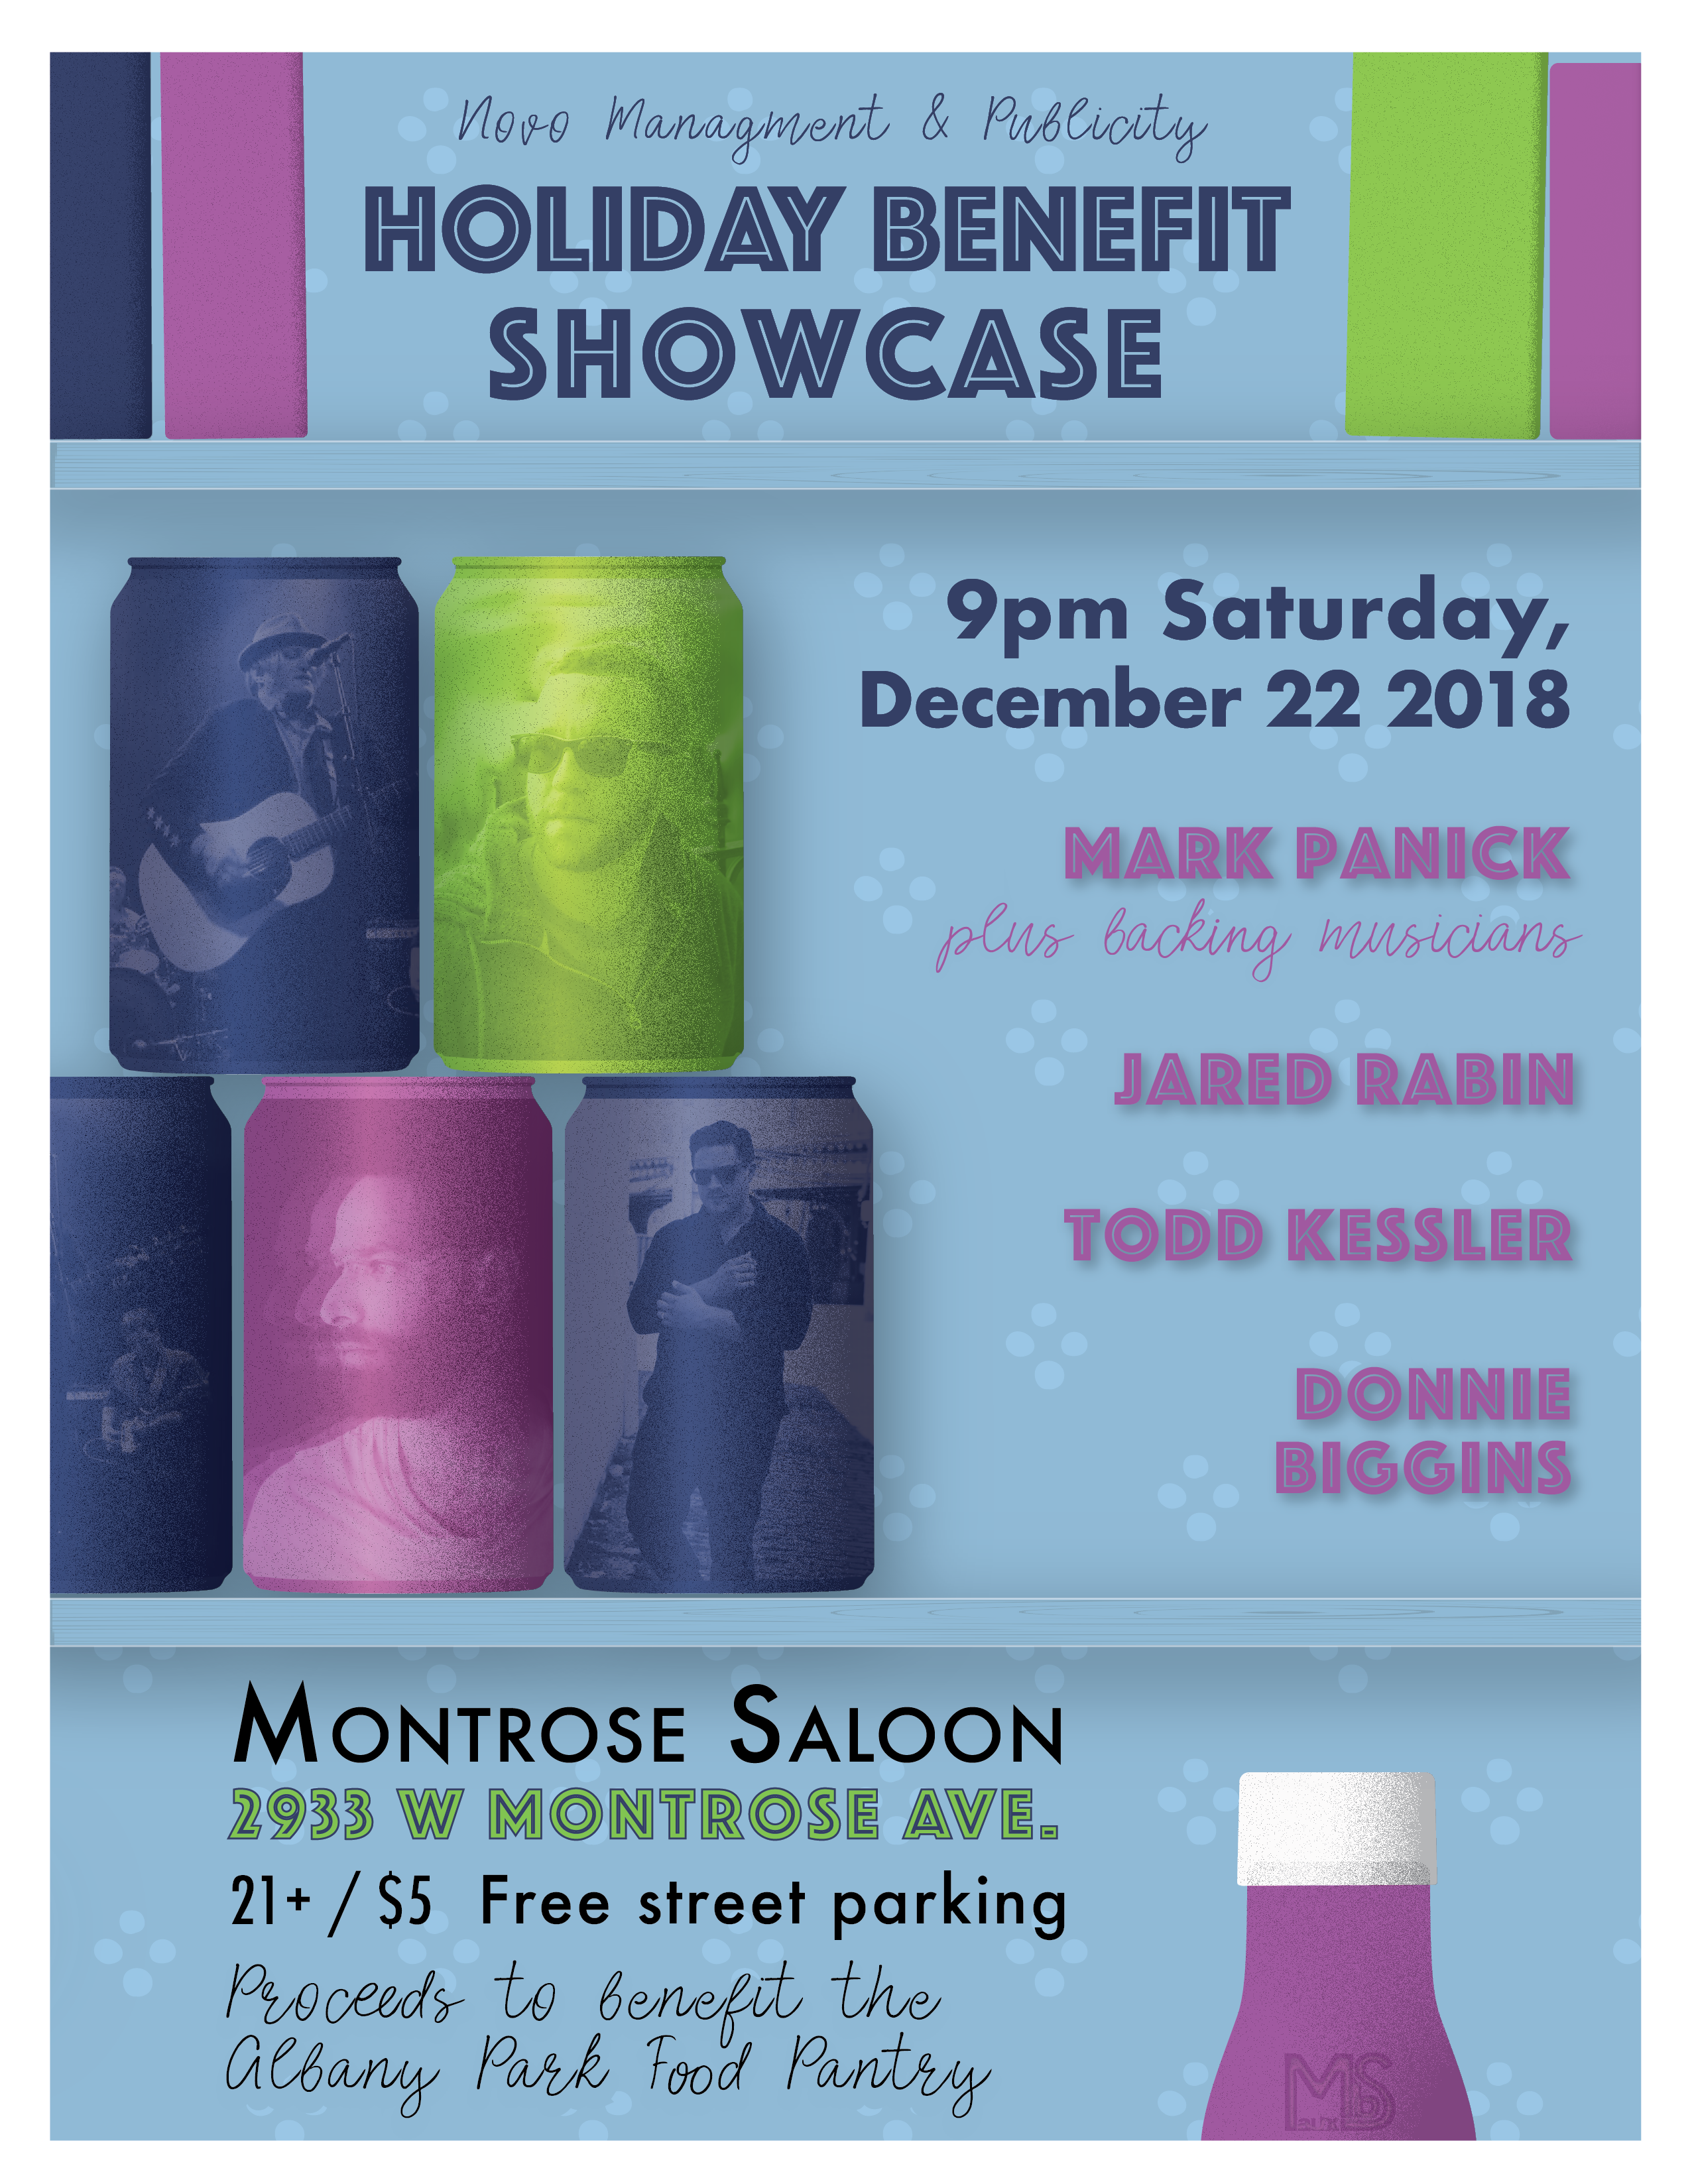 Holiday Benefit Showcase​ at Montrose Saloon | December 22, 2018 lead image